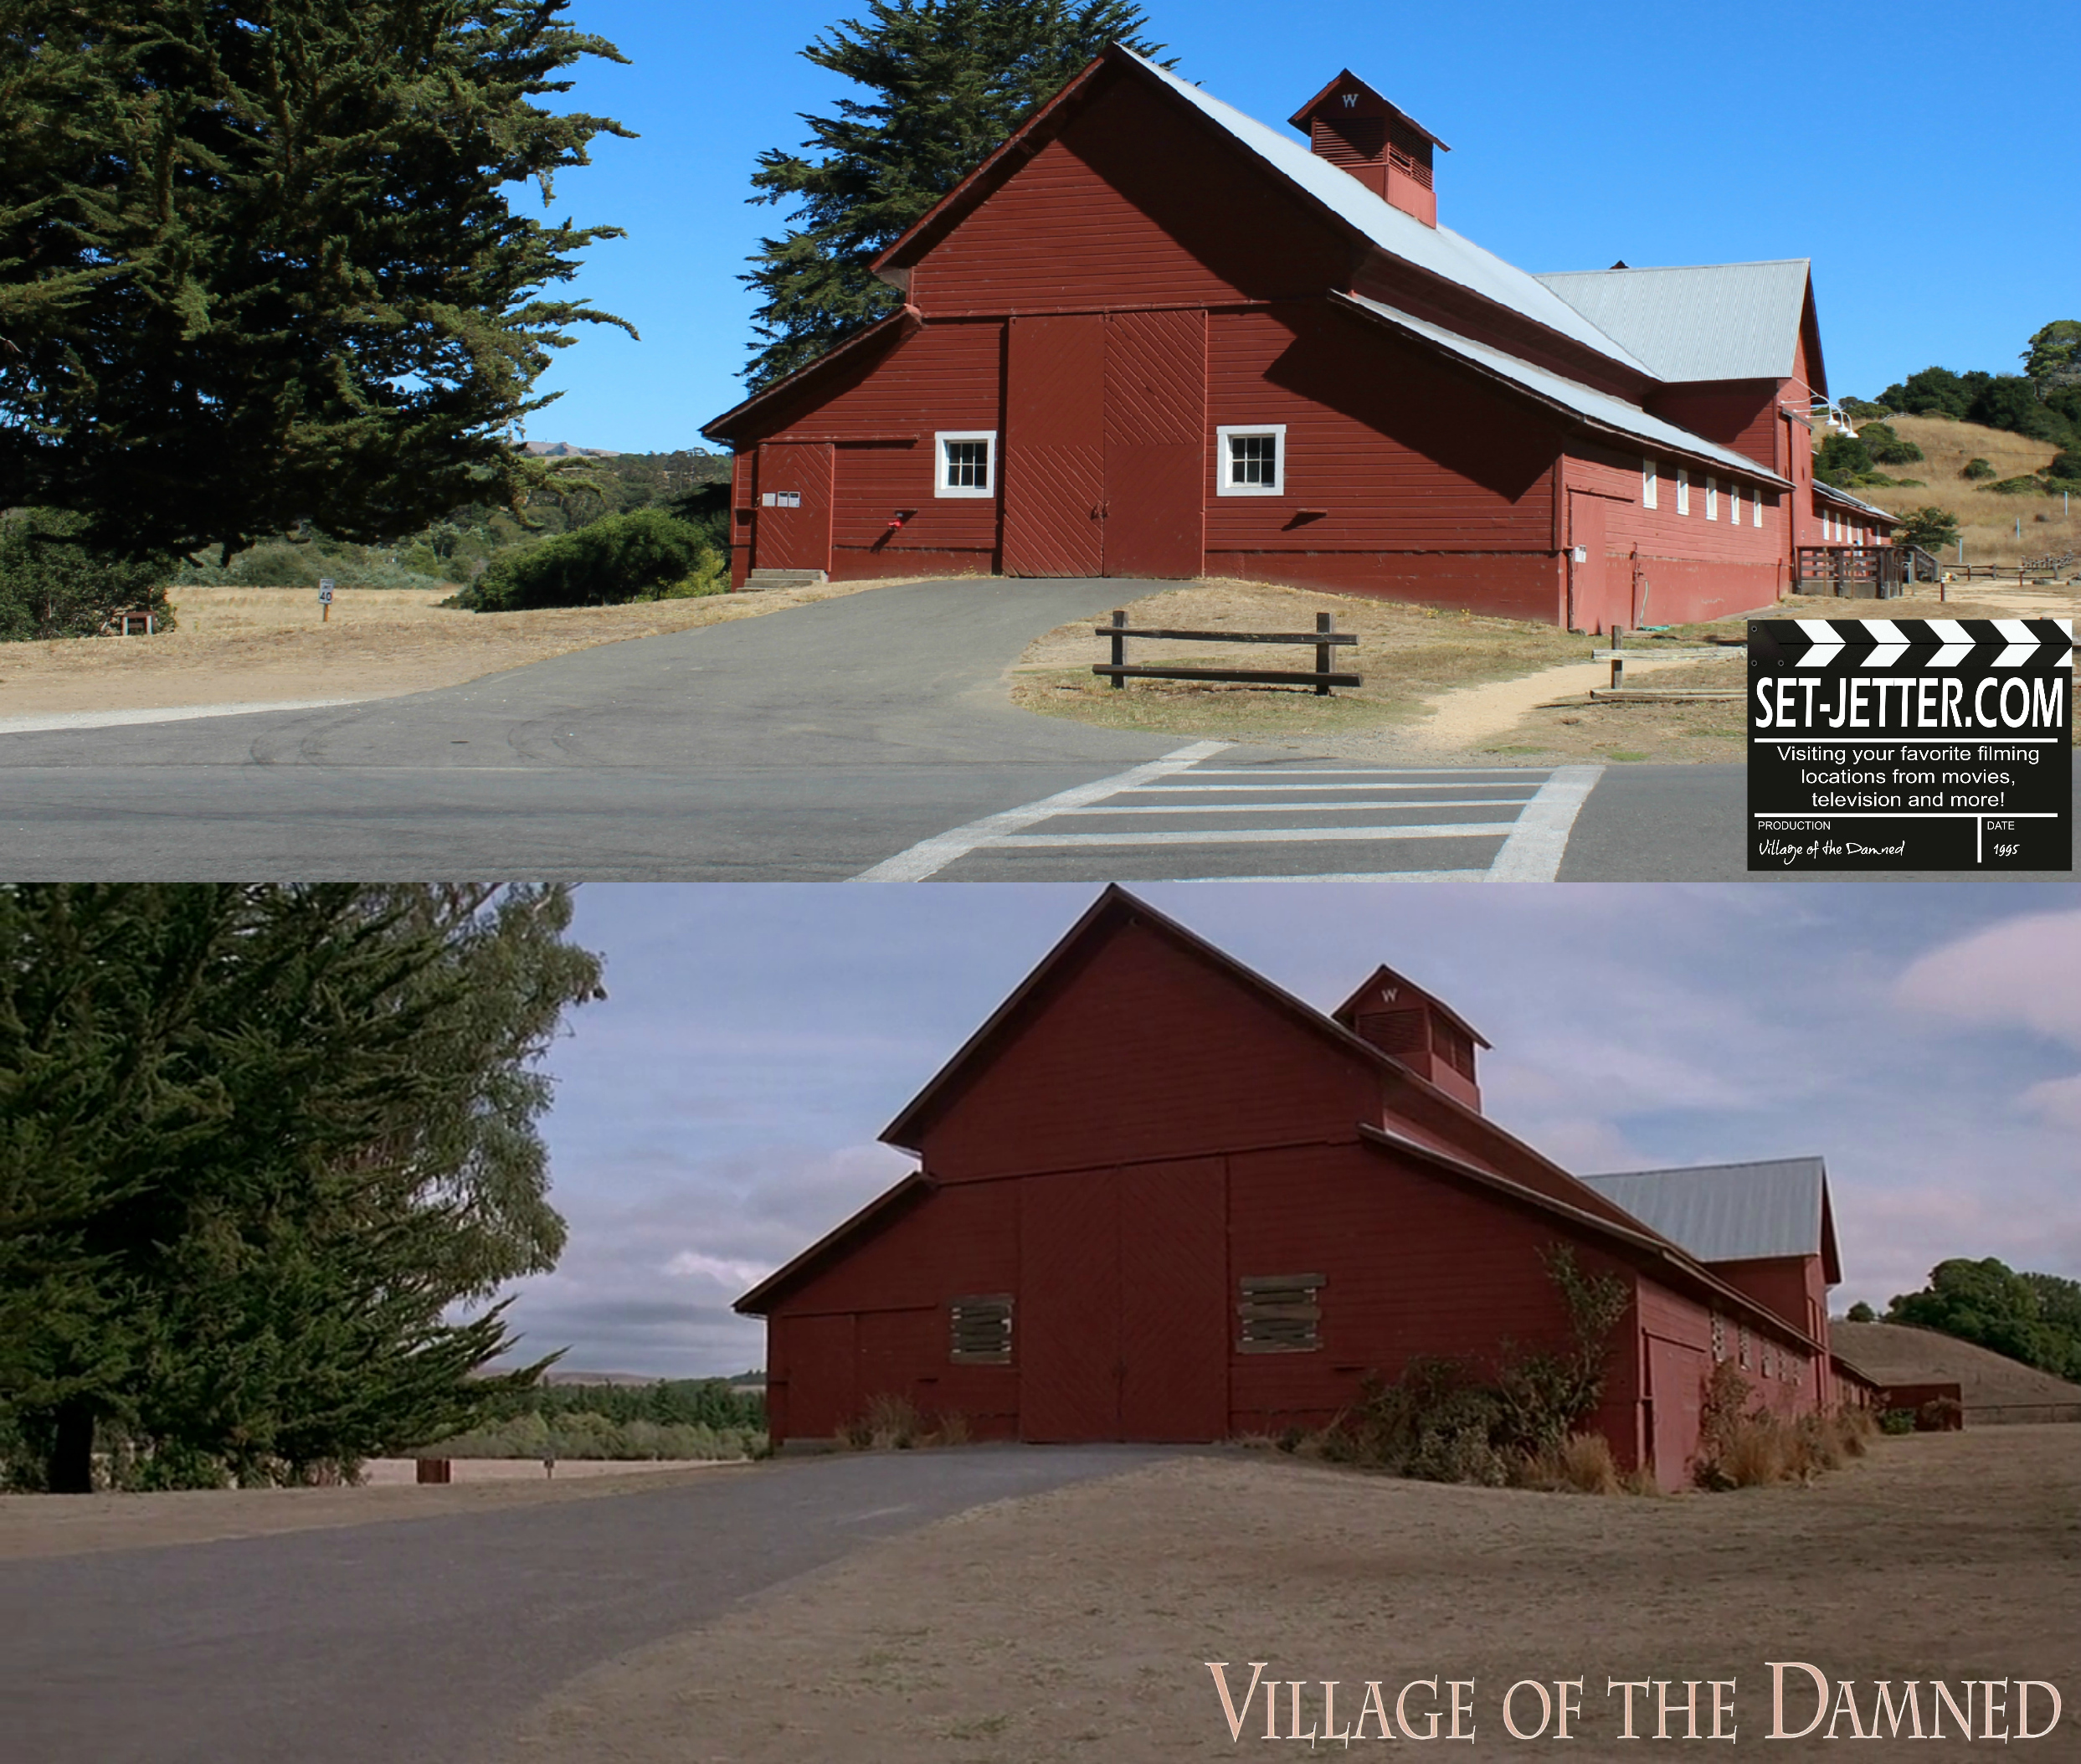 Village of the Damned comparison 183.jpg